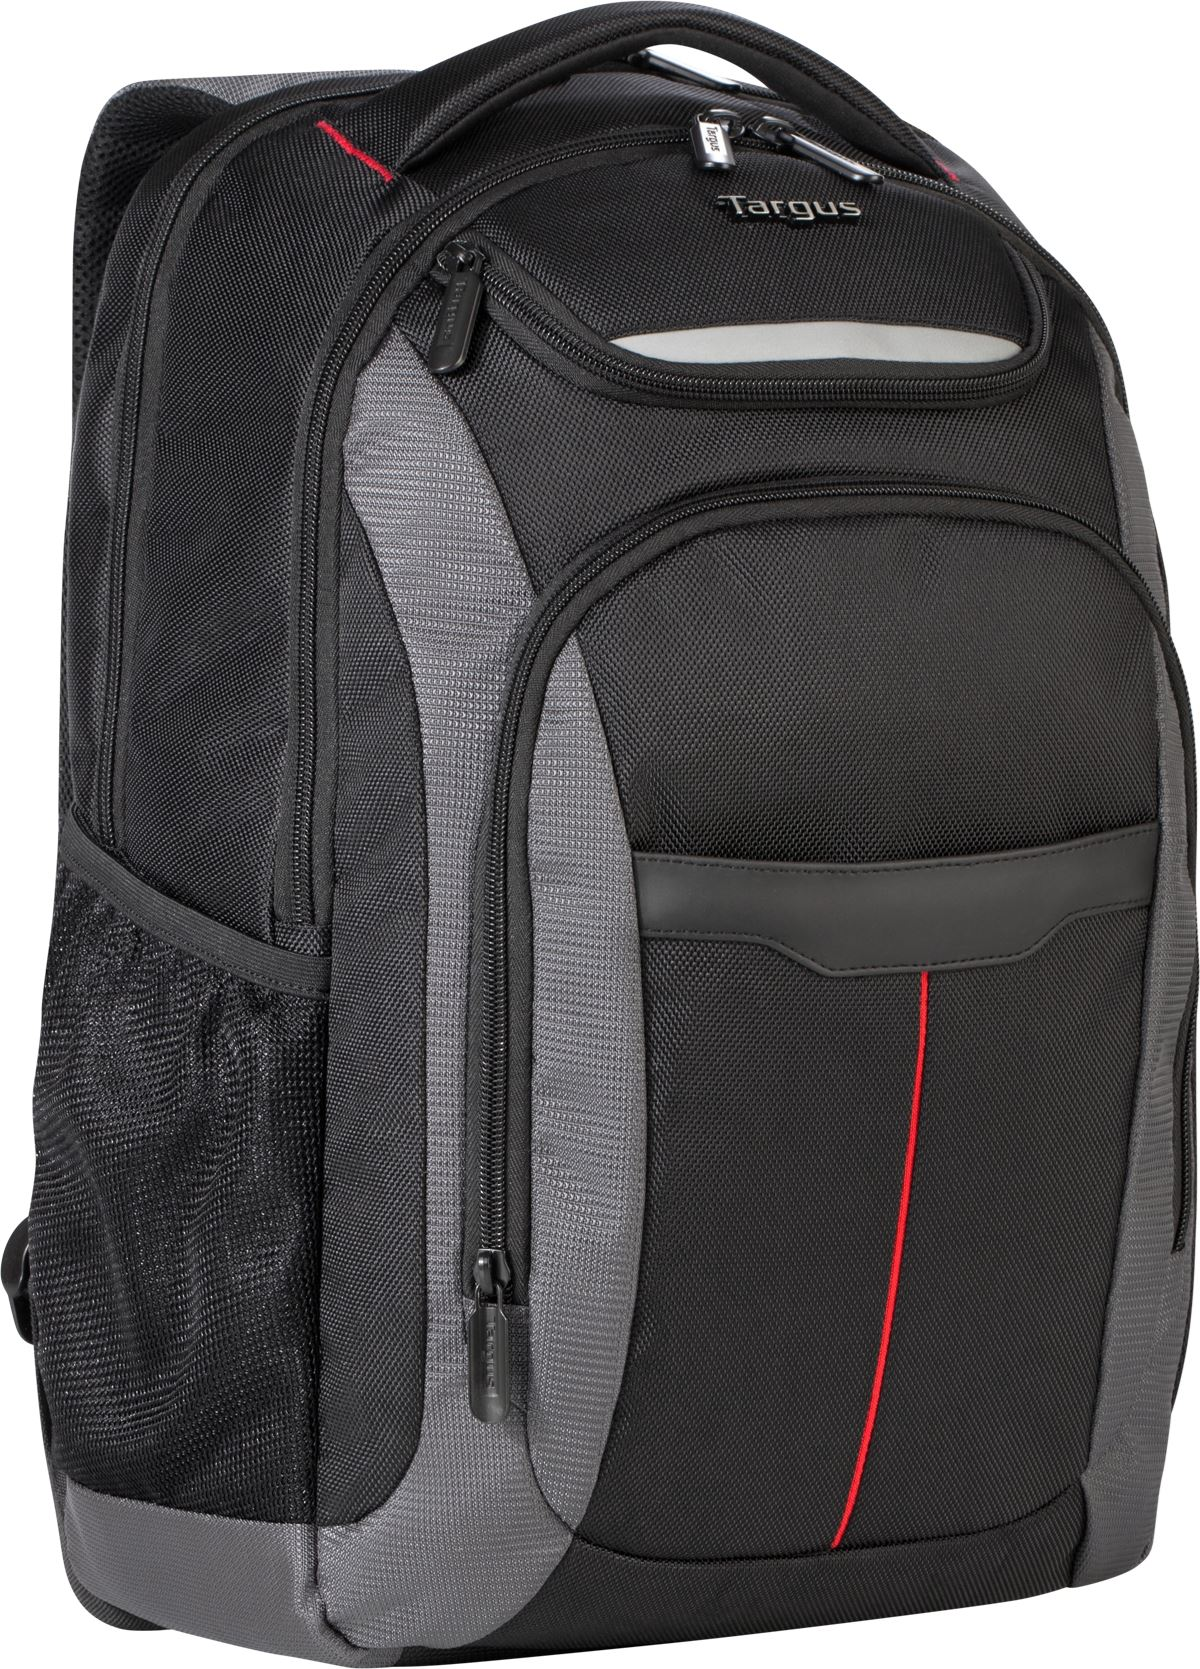 "17"" Gravity Laptop Backpack - TSB628 - Black/Gray: Backpacks: Targus"